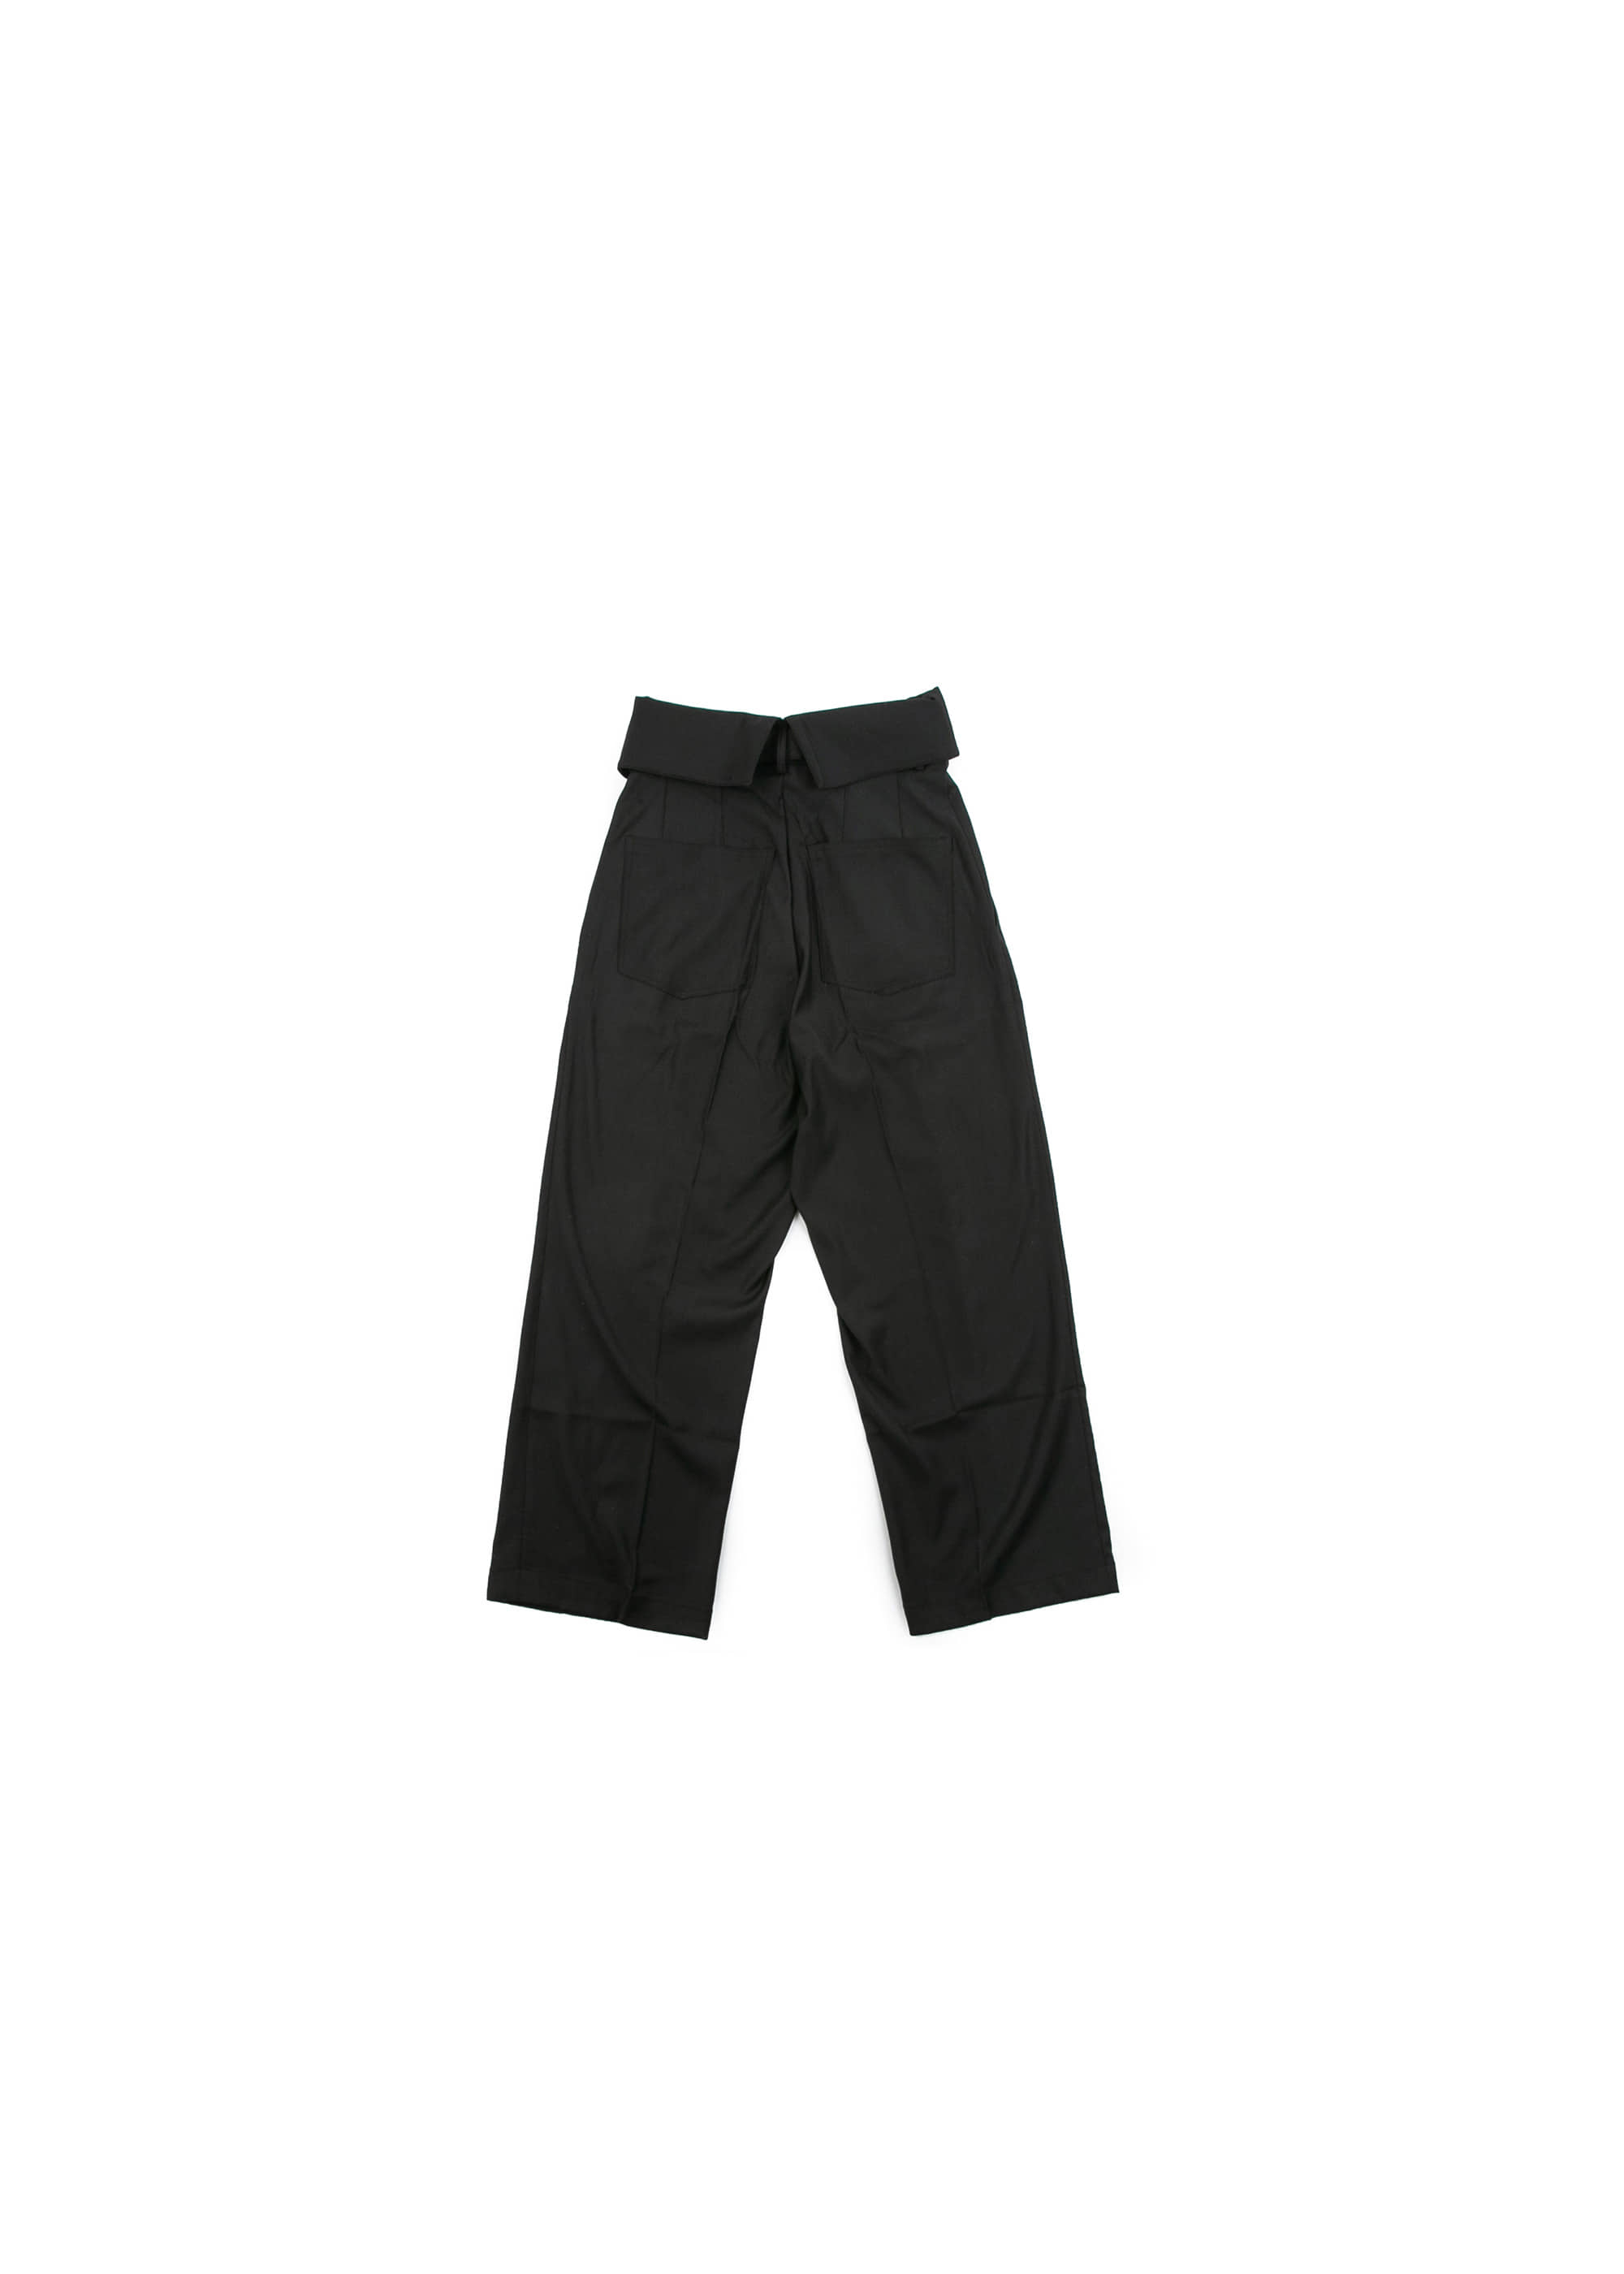 Over Fold Wide Slacks - Black